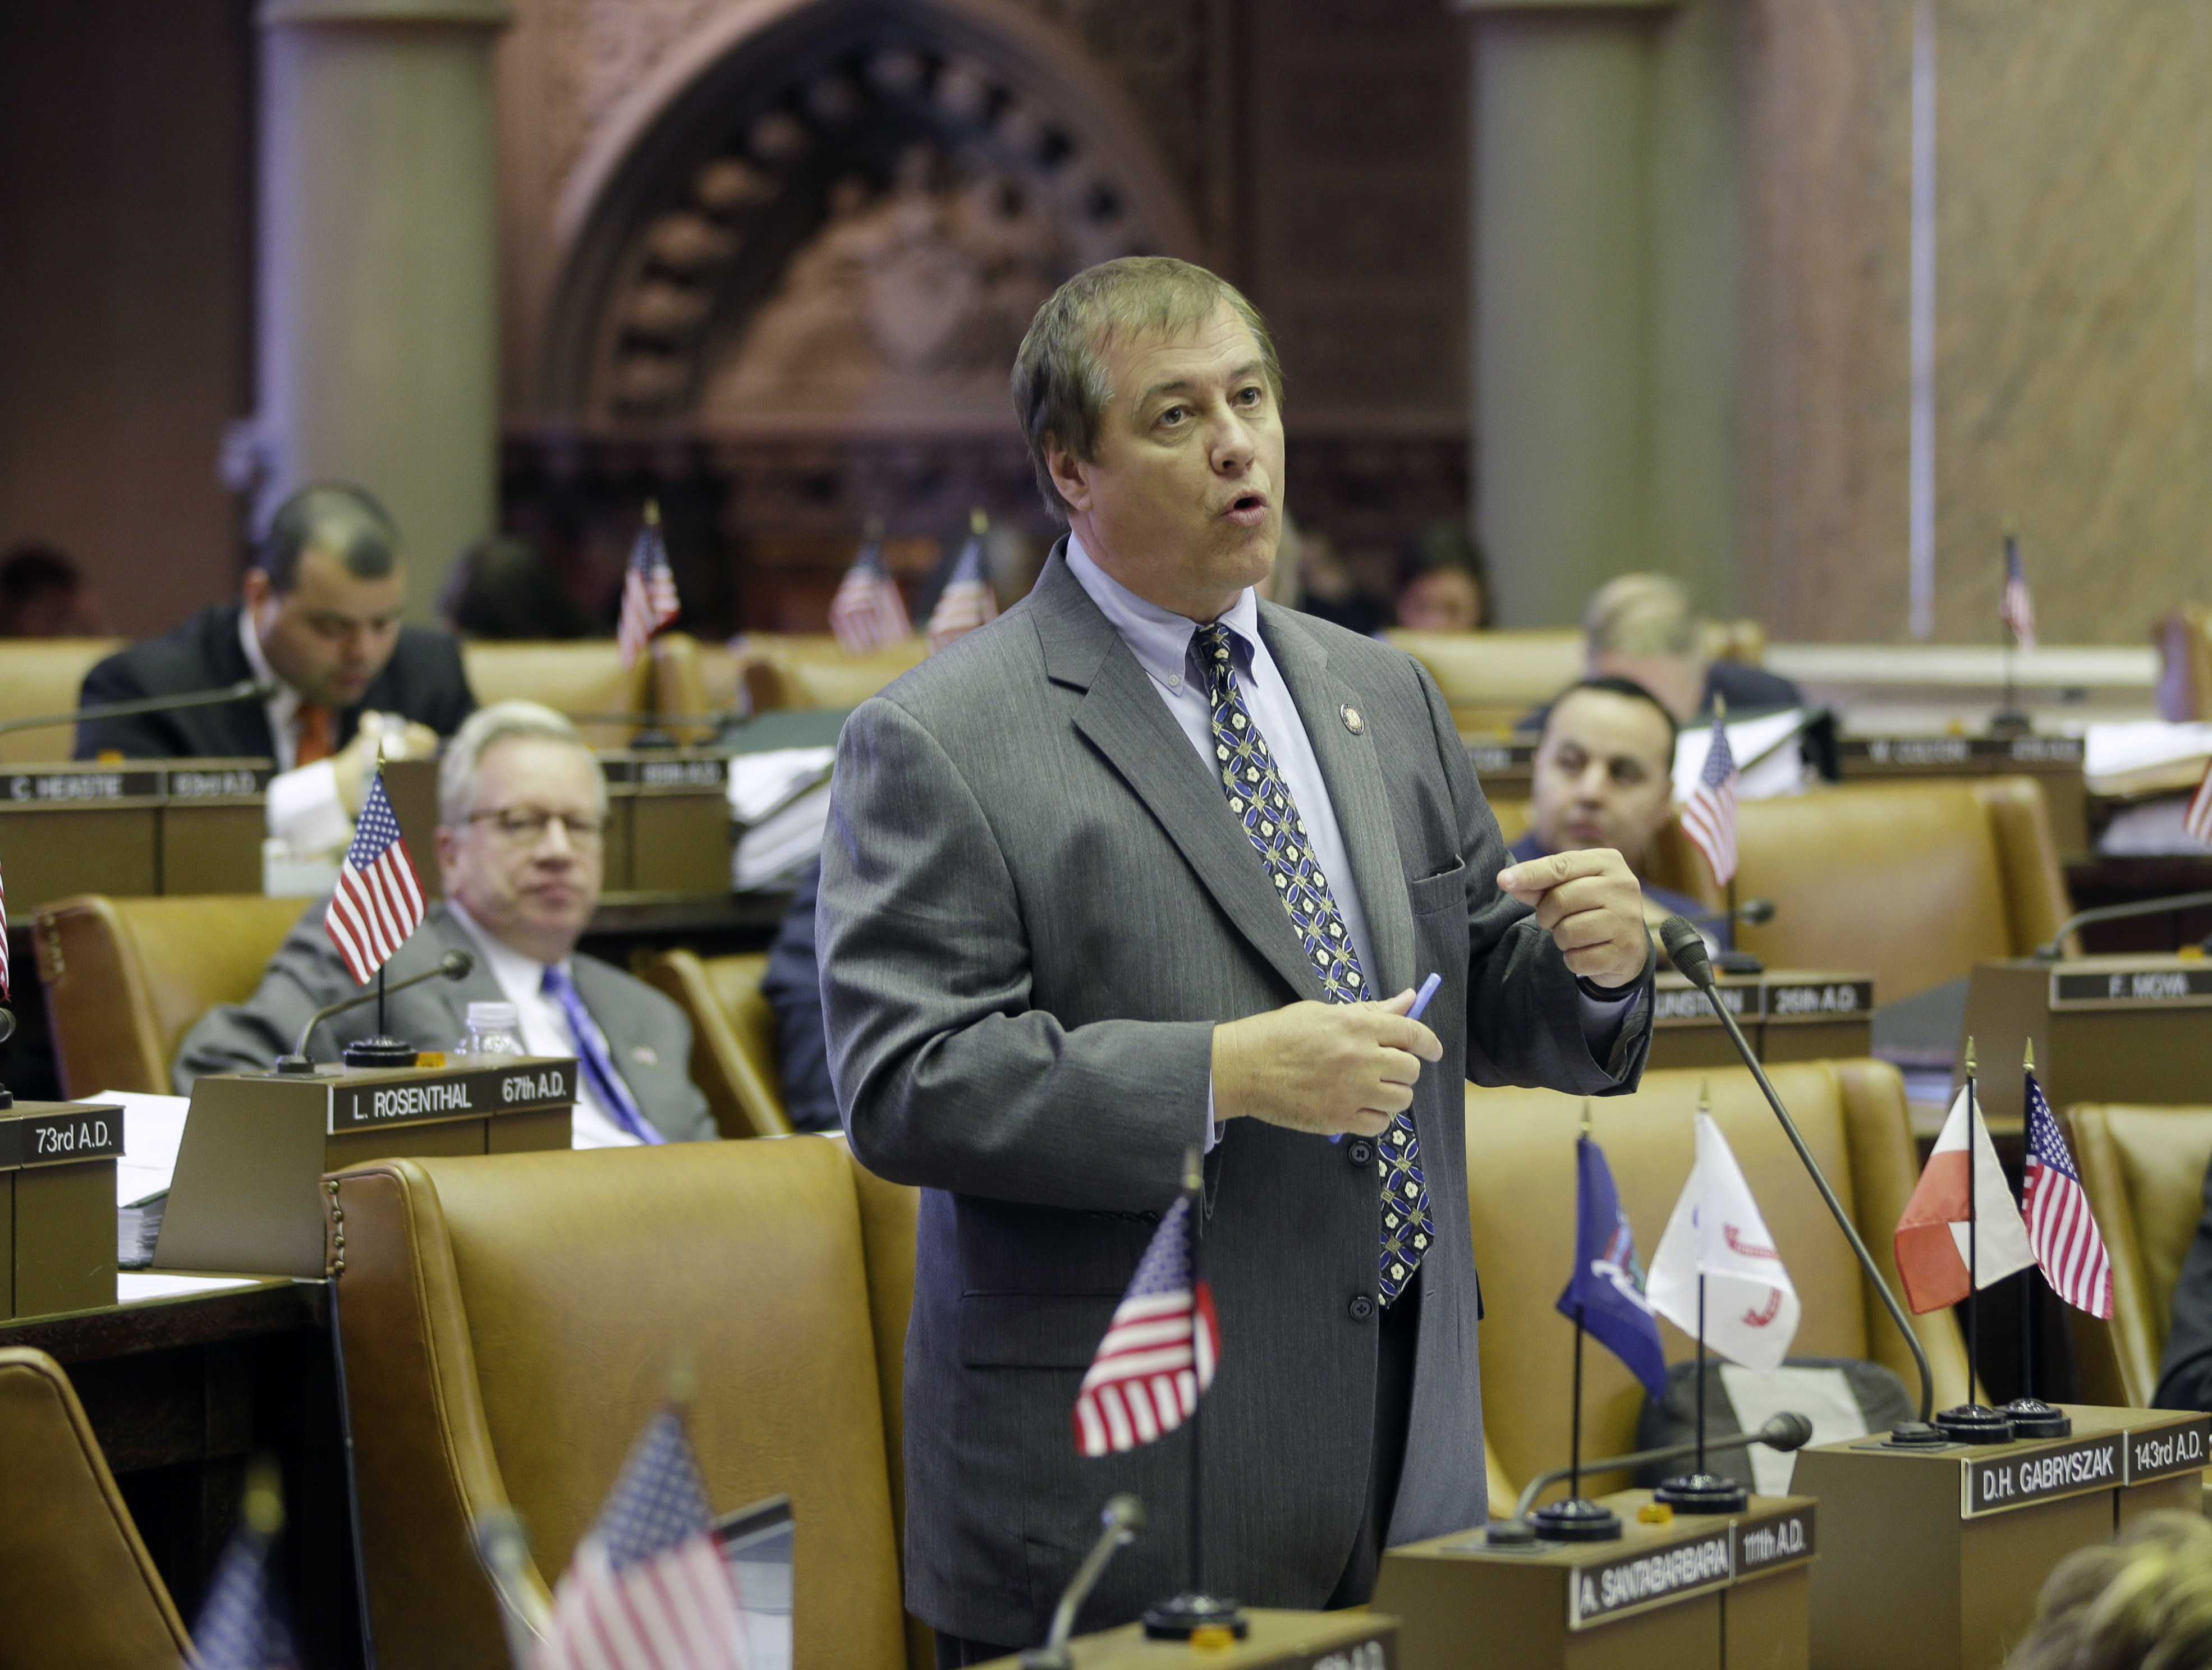 The State Legislature clearly has a problem with sexual harassment, as evidenced by the despicable behavior of Dennis Gabryszak, shown on the floor of the Assembly June 13, 2013. (AP file photo)